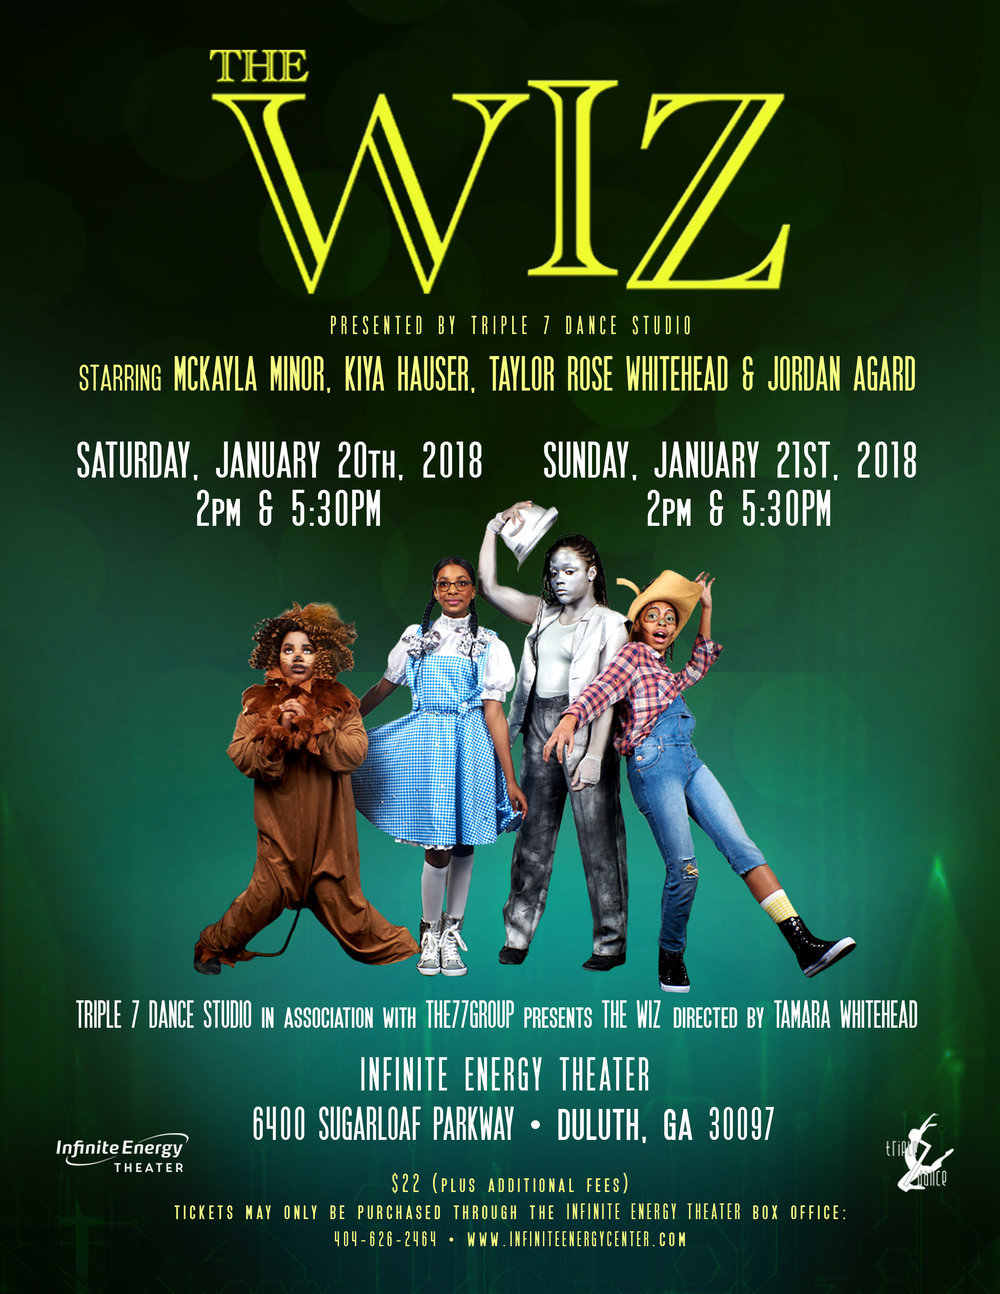 THE WIZ - Coming January 2018